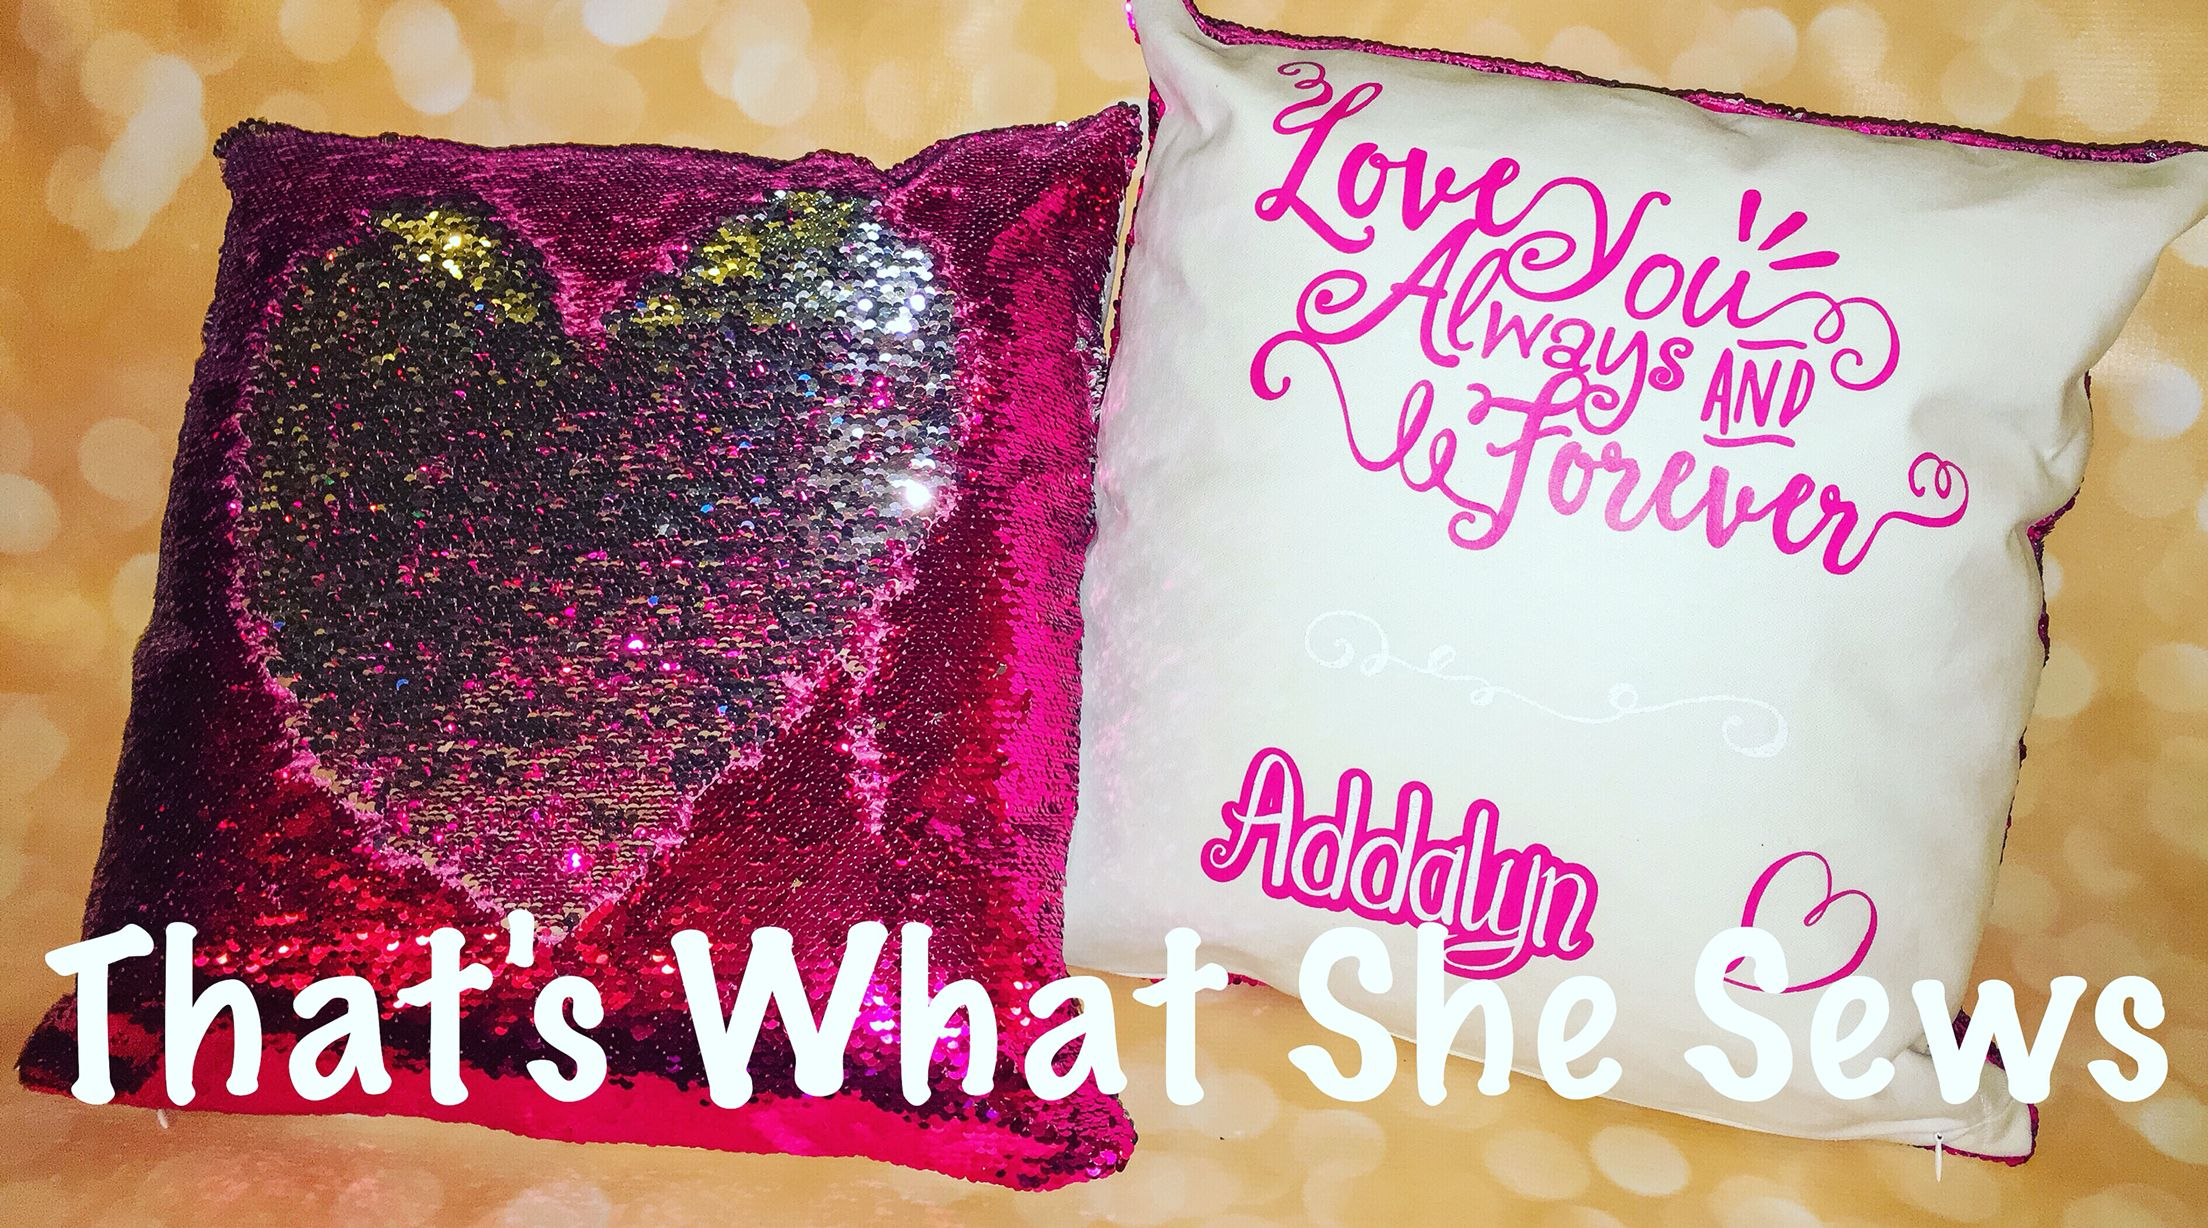 Mermaid Reversible Sequin Pillows Customized With Names And Favorite Quotes 50 Unique Items Products Mermaid Pillow Personalized Gifts